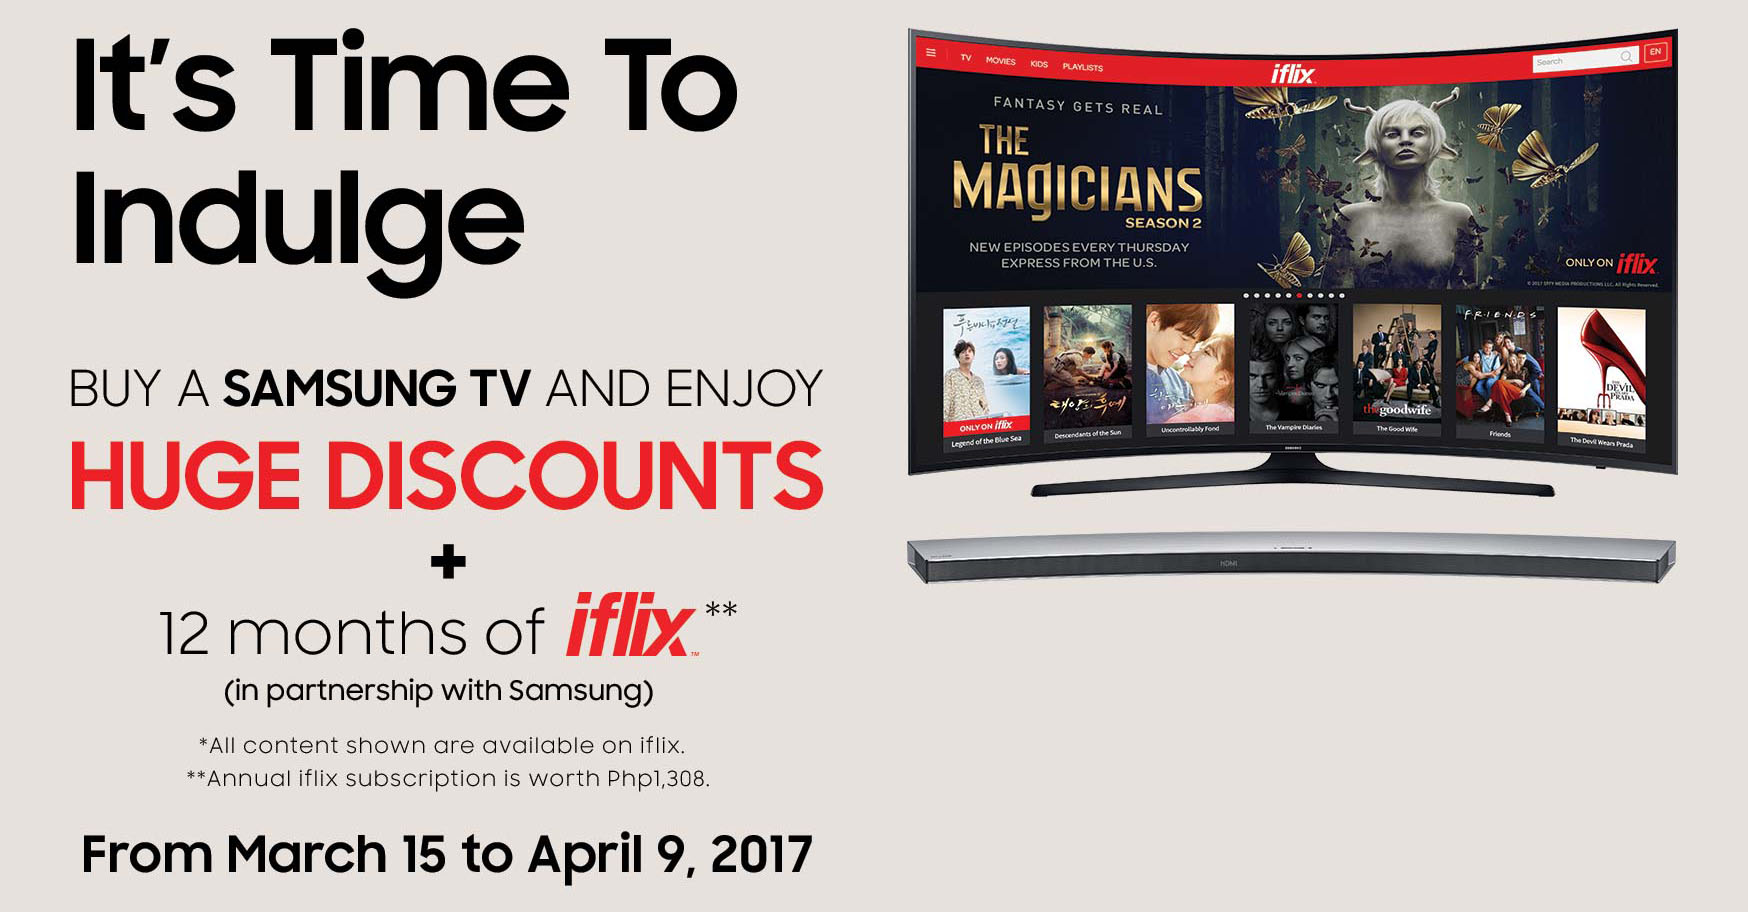 Samsung It's Time to Indulge Promo